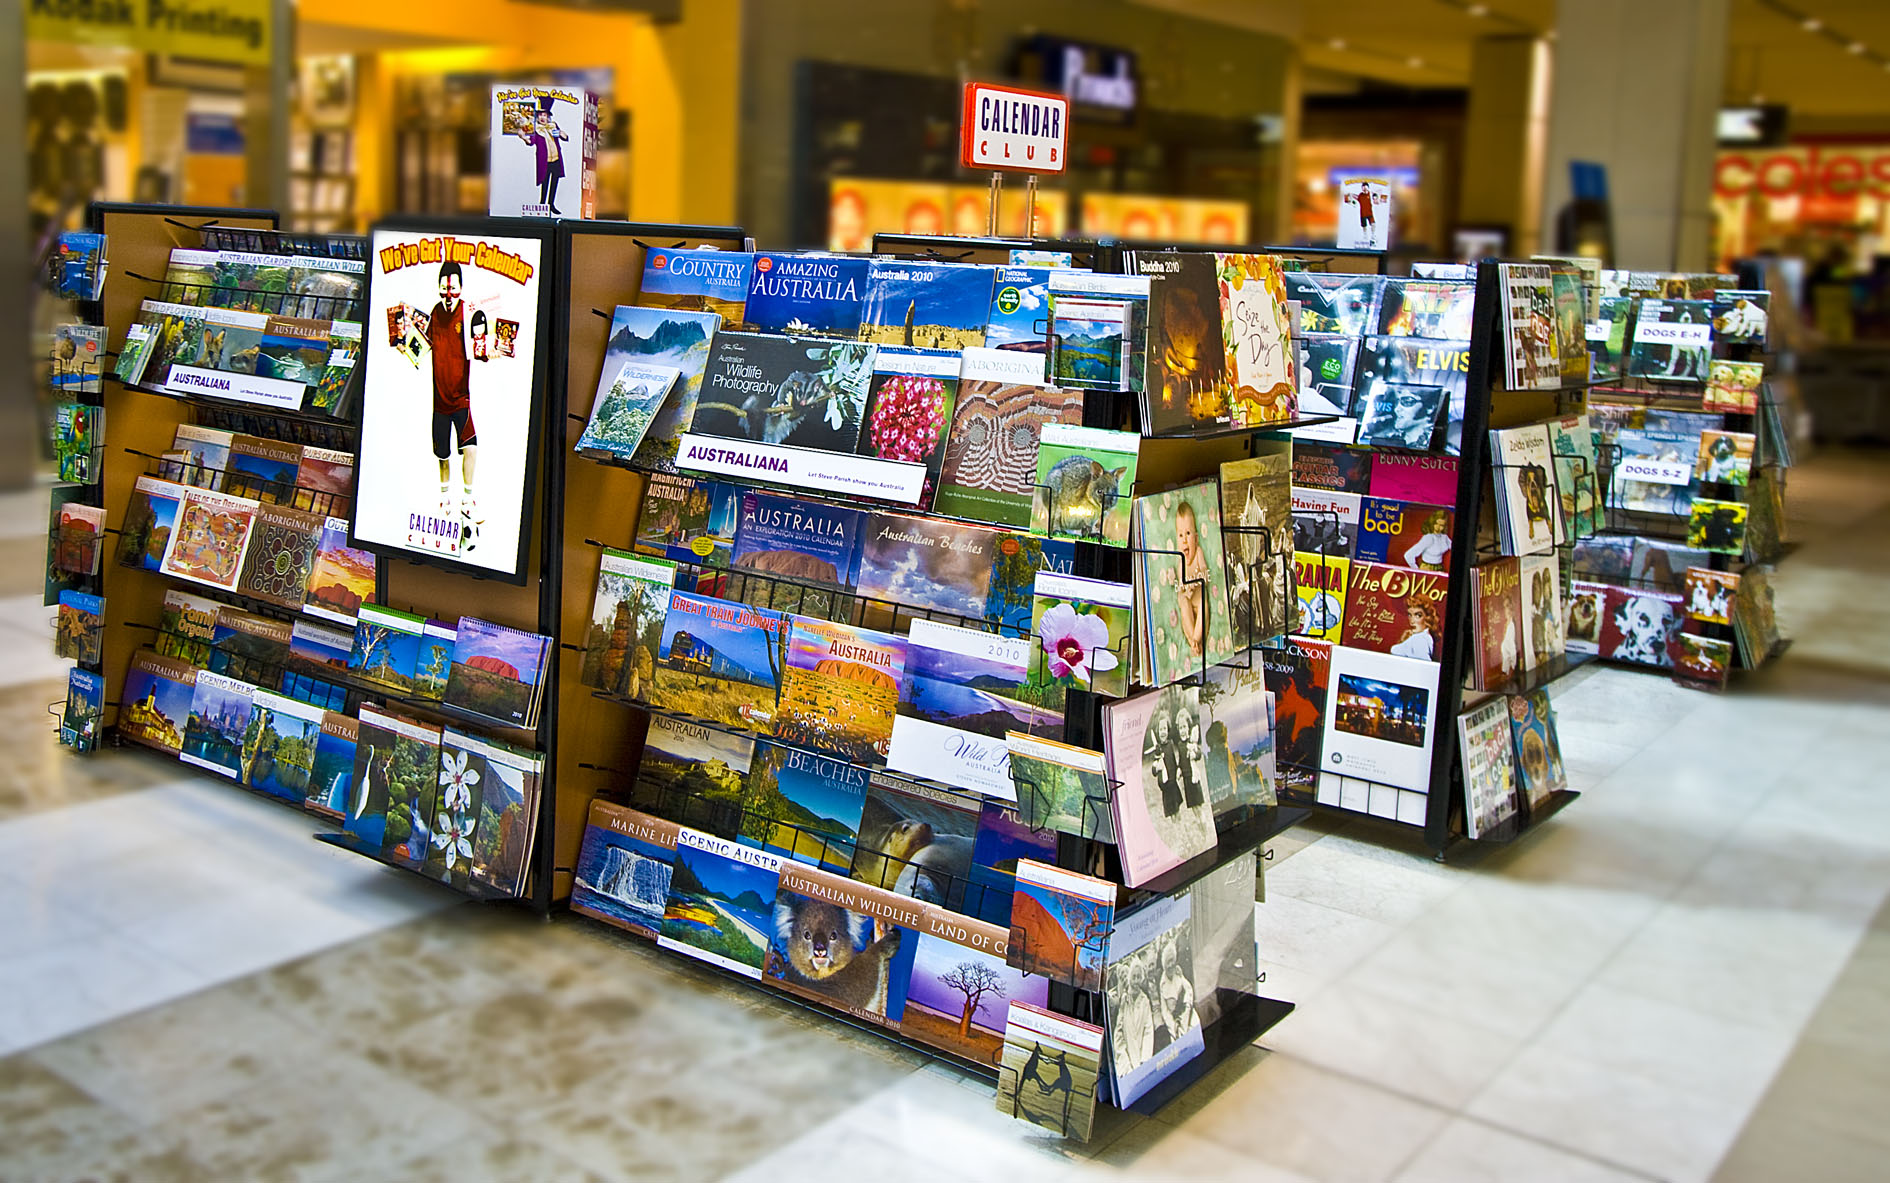 The Calendar Club is the Memorial City Mall's go-to destination for anything calendar related. Although Calendar Club normally operates a kiosk year-round, they set up shop in a vacant suite towards the end of the year to keep up with customer demand.5/5(1).